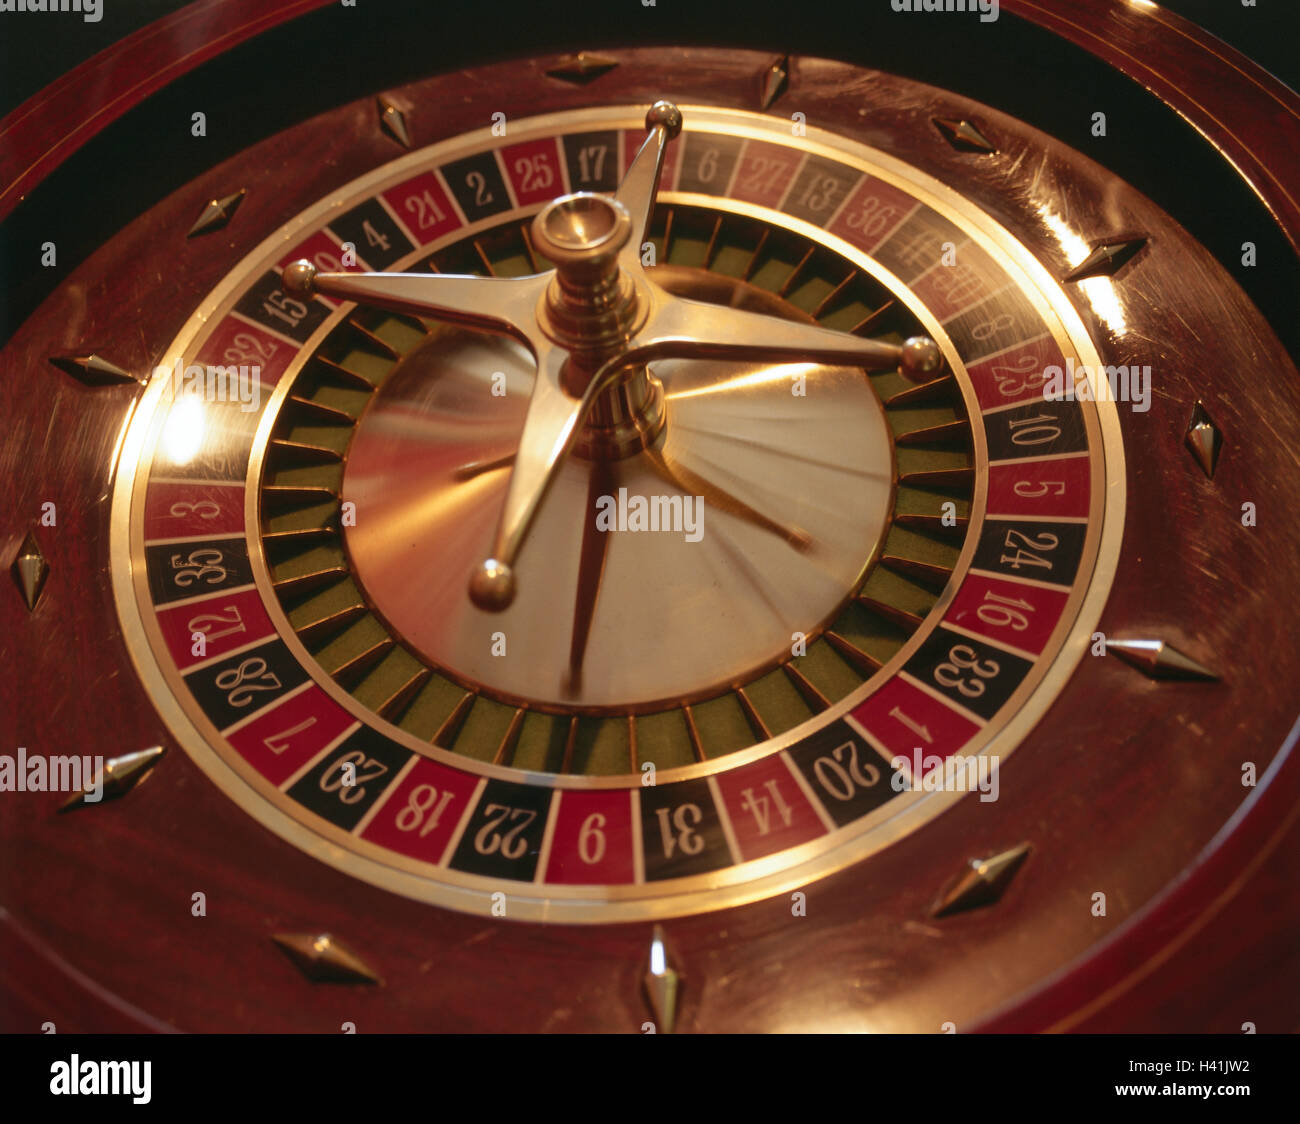 Casino, roulette, detail, casino, game chance, game, risk, chance, roulette game, roulette, roulette game, slice, - Stock Image